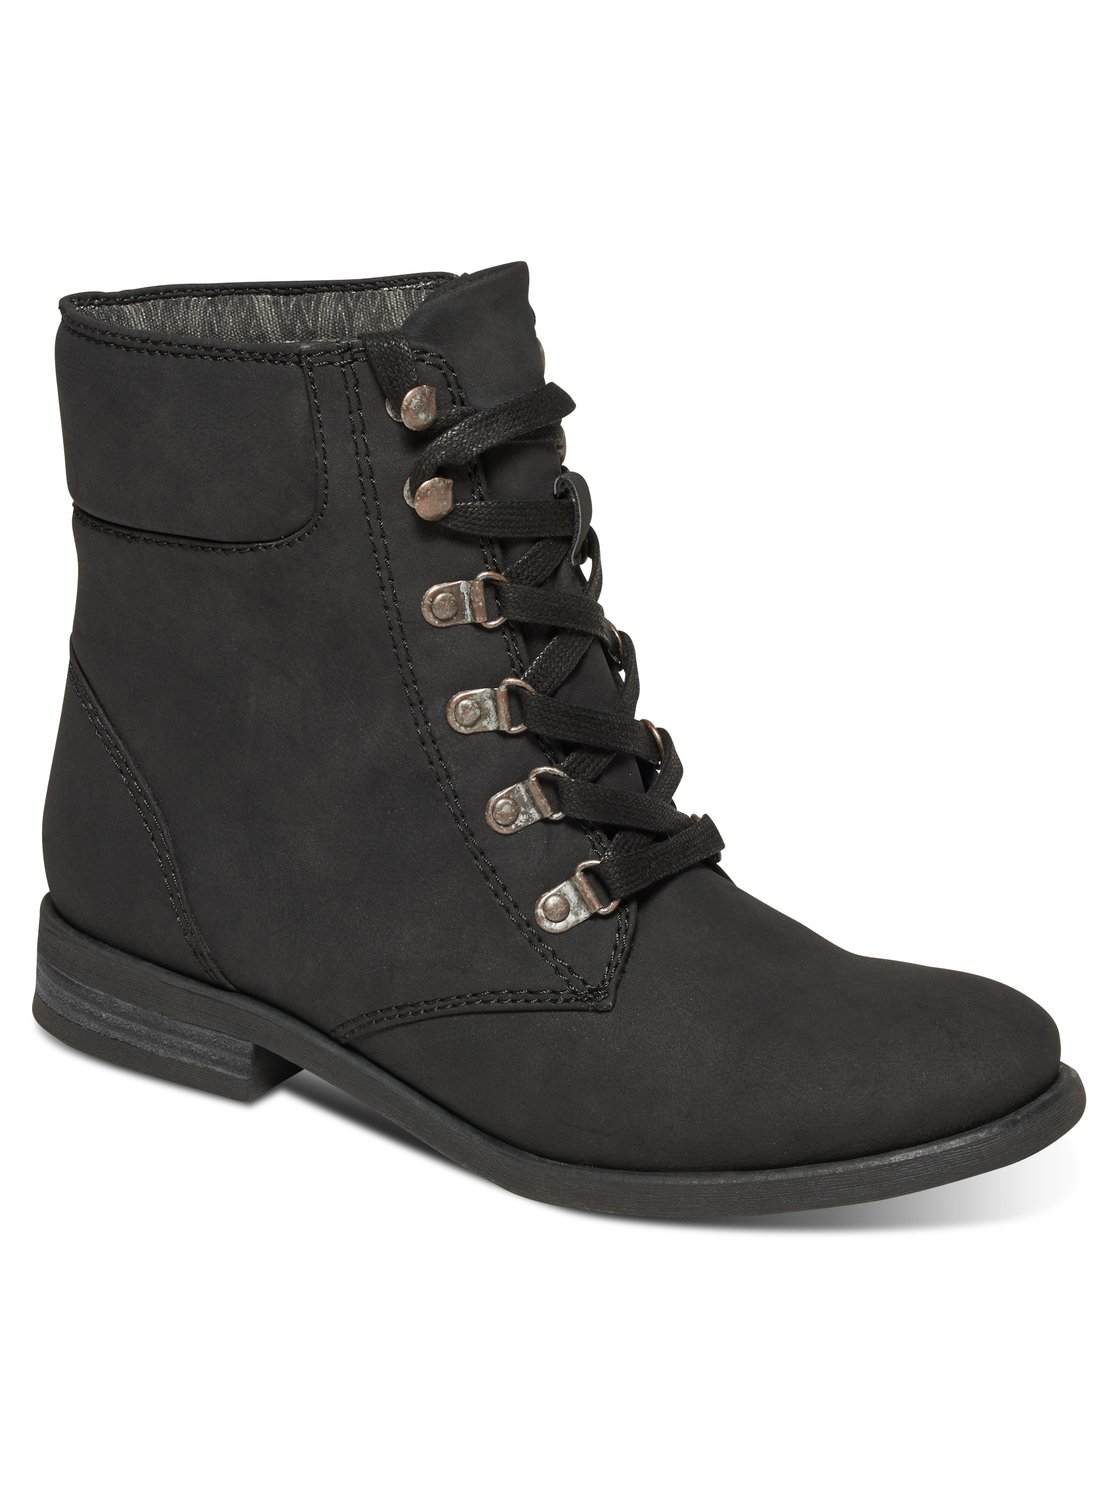 Fulton Lace-Up Boots ARJB700406 | Roxy